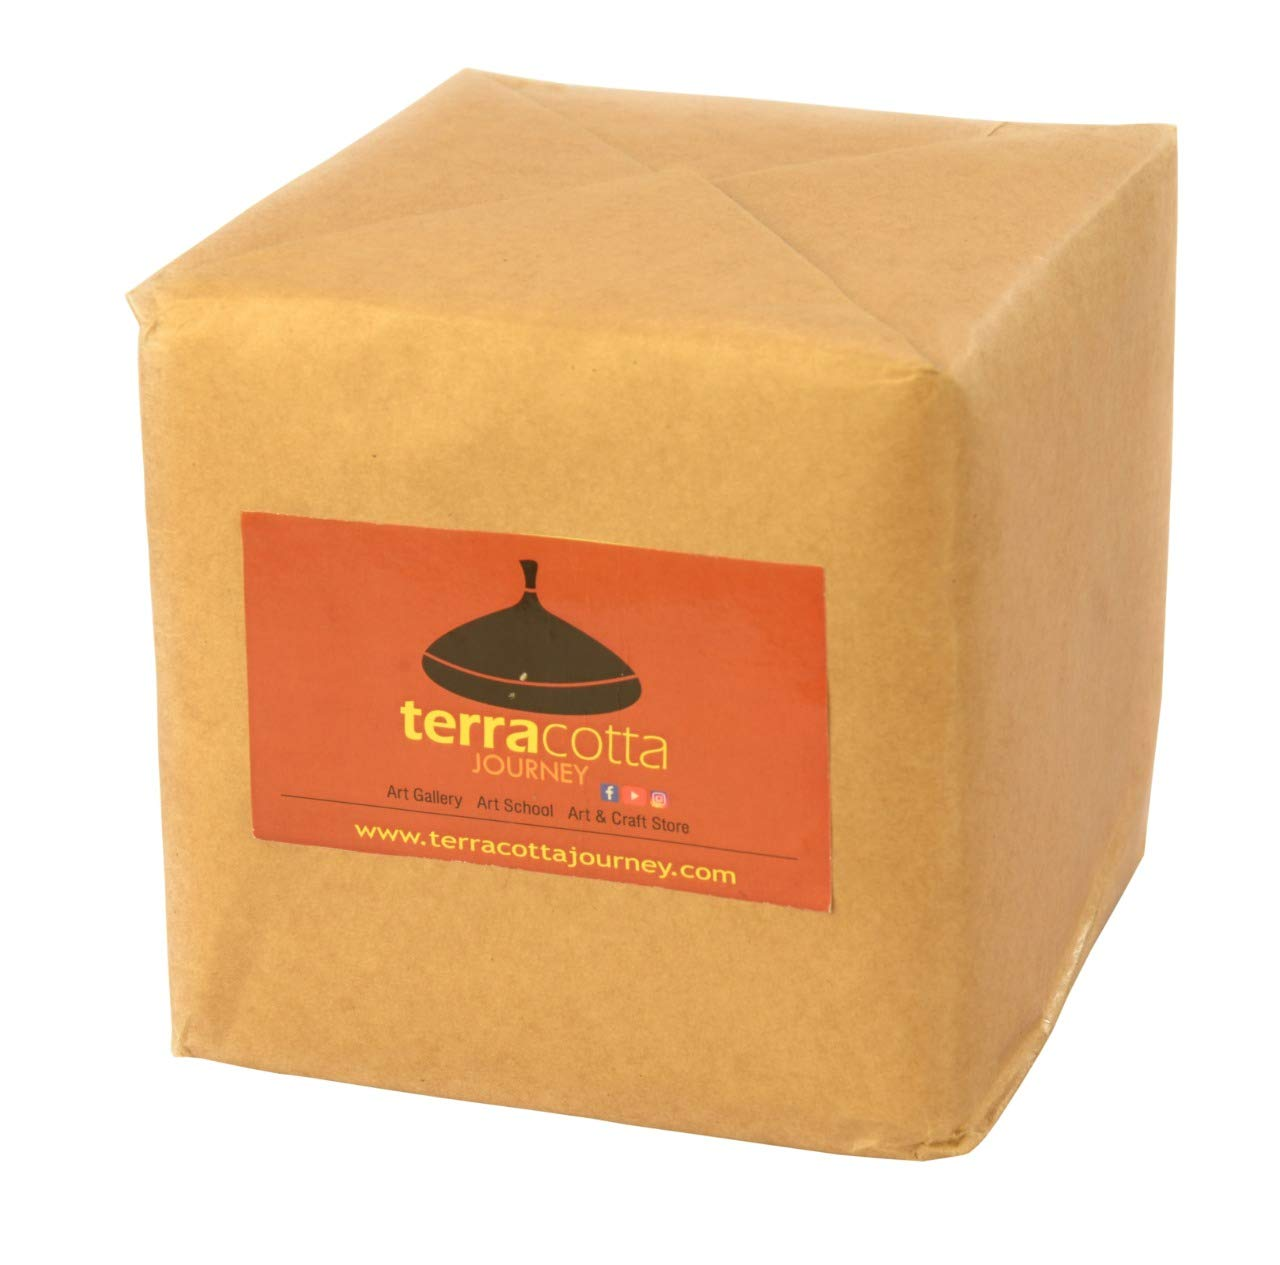 Terracotta Journey 100/% Pure and Organic Natural Earthen Eco friendly Clay for Homemade Jewelry Making and Pottery 1 kg